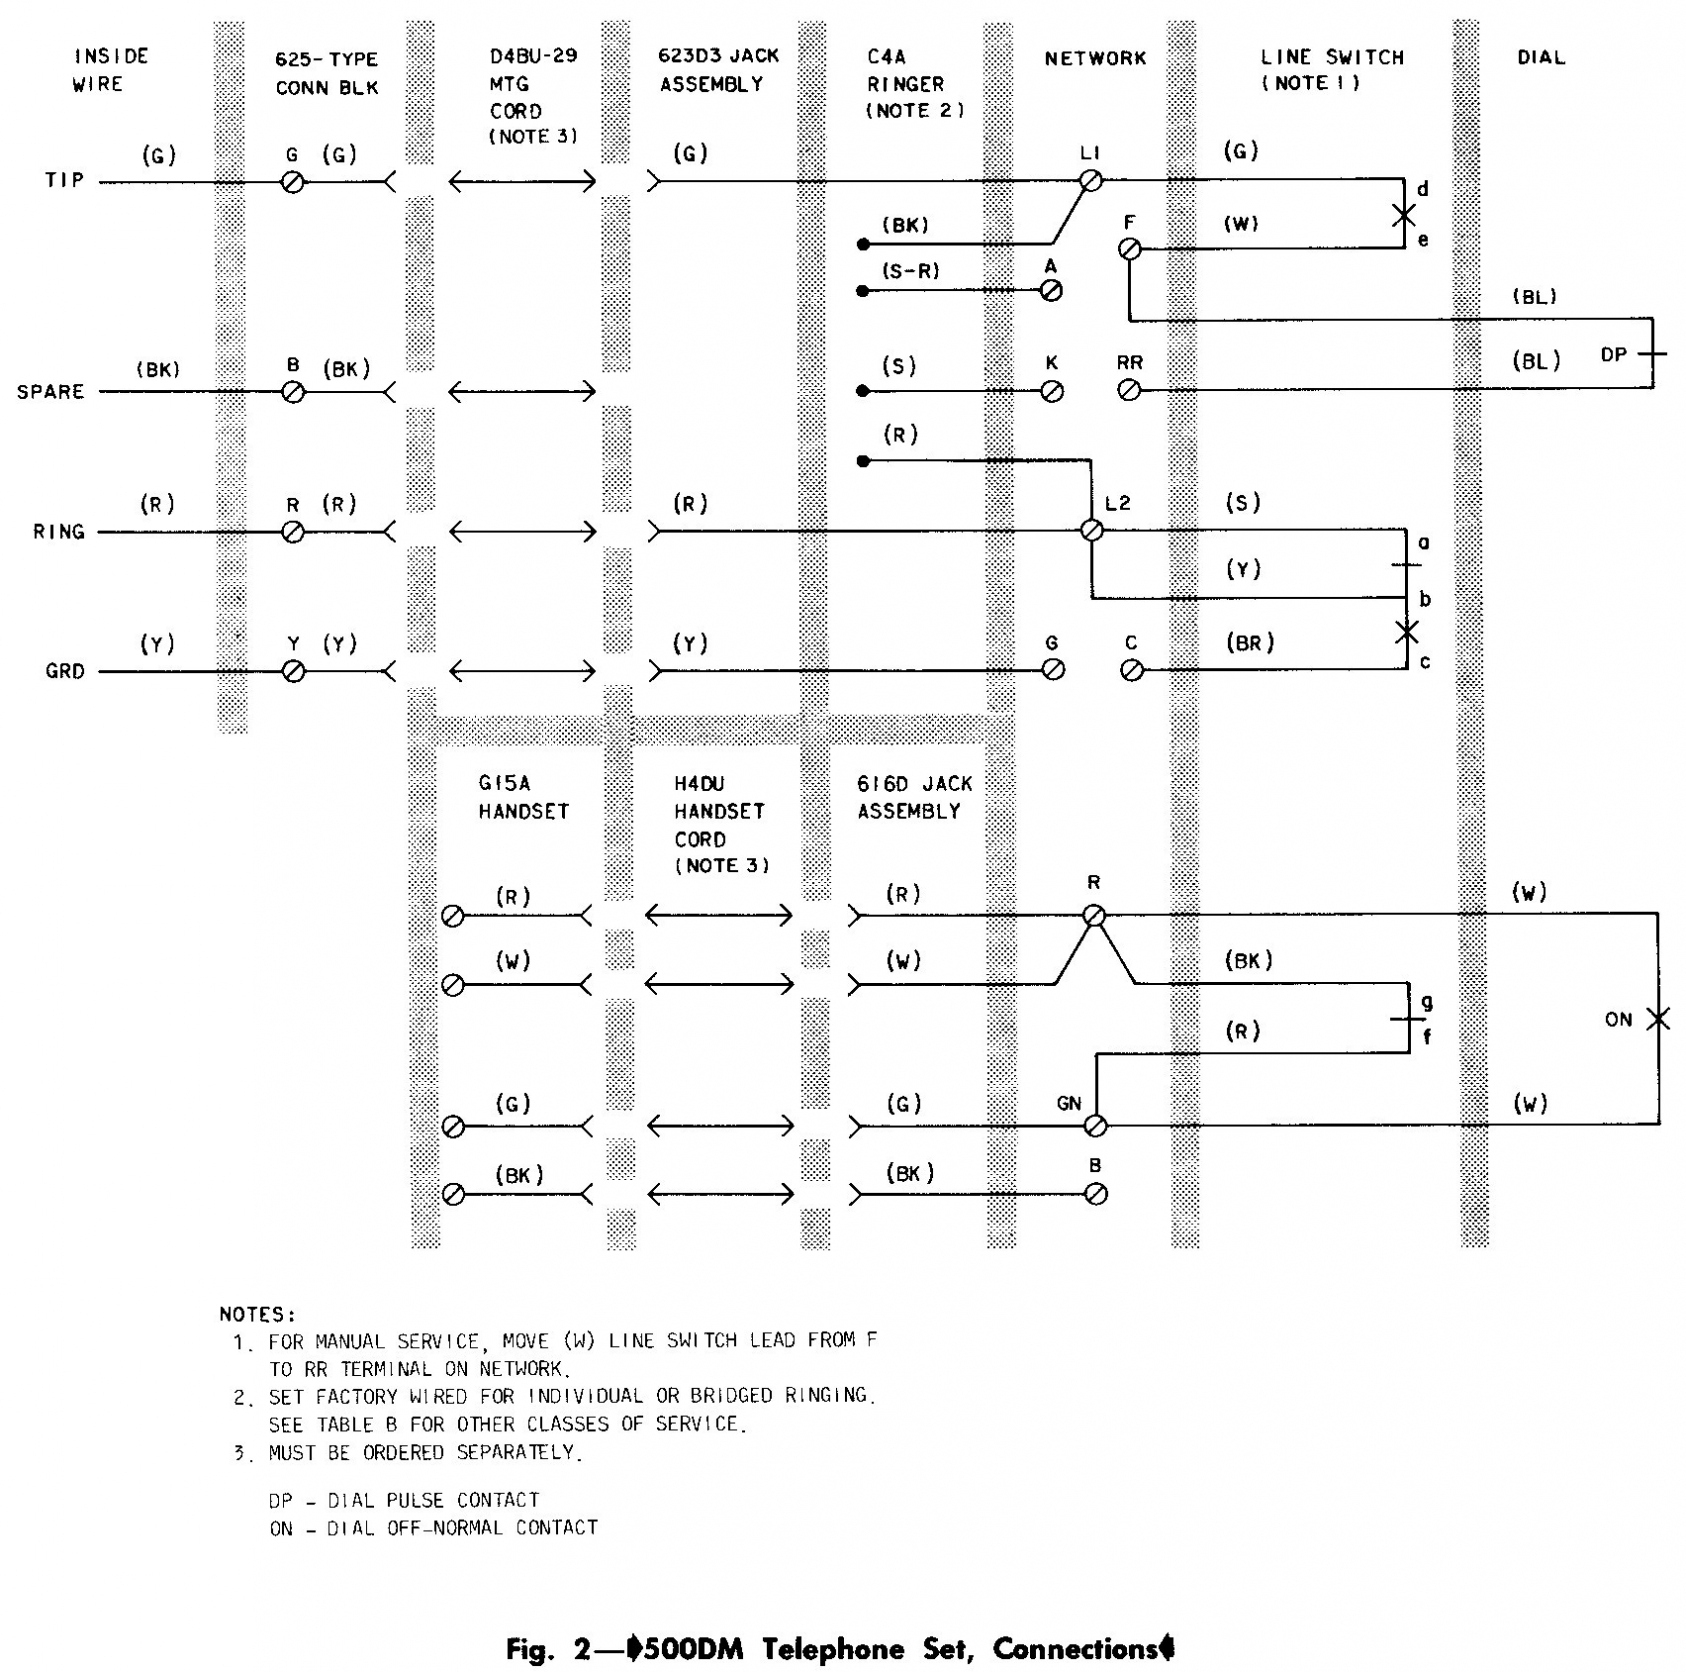 Cat5e Telephone Wiring Diagram Allove Manual Guide